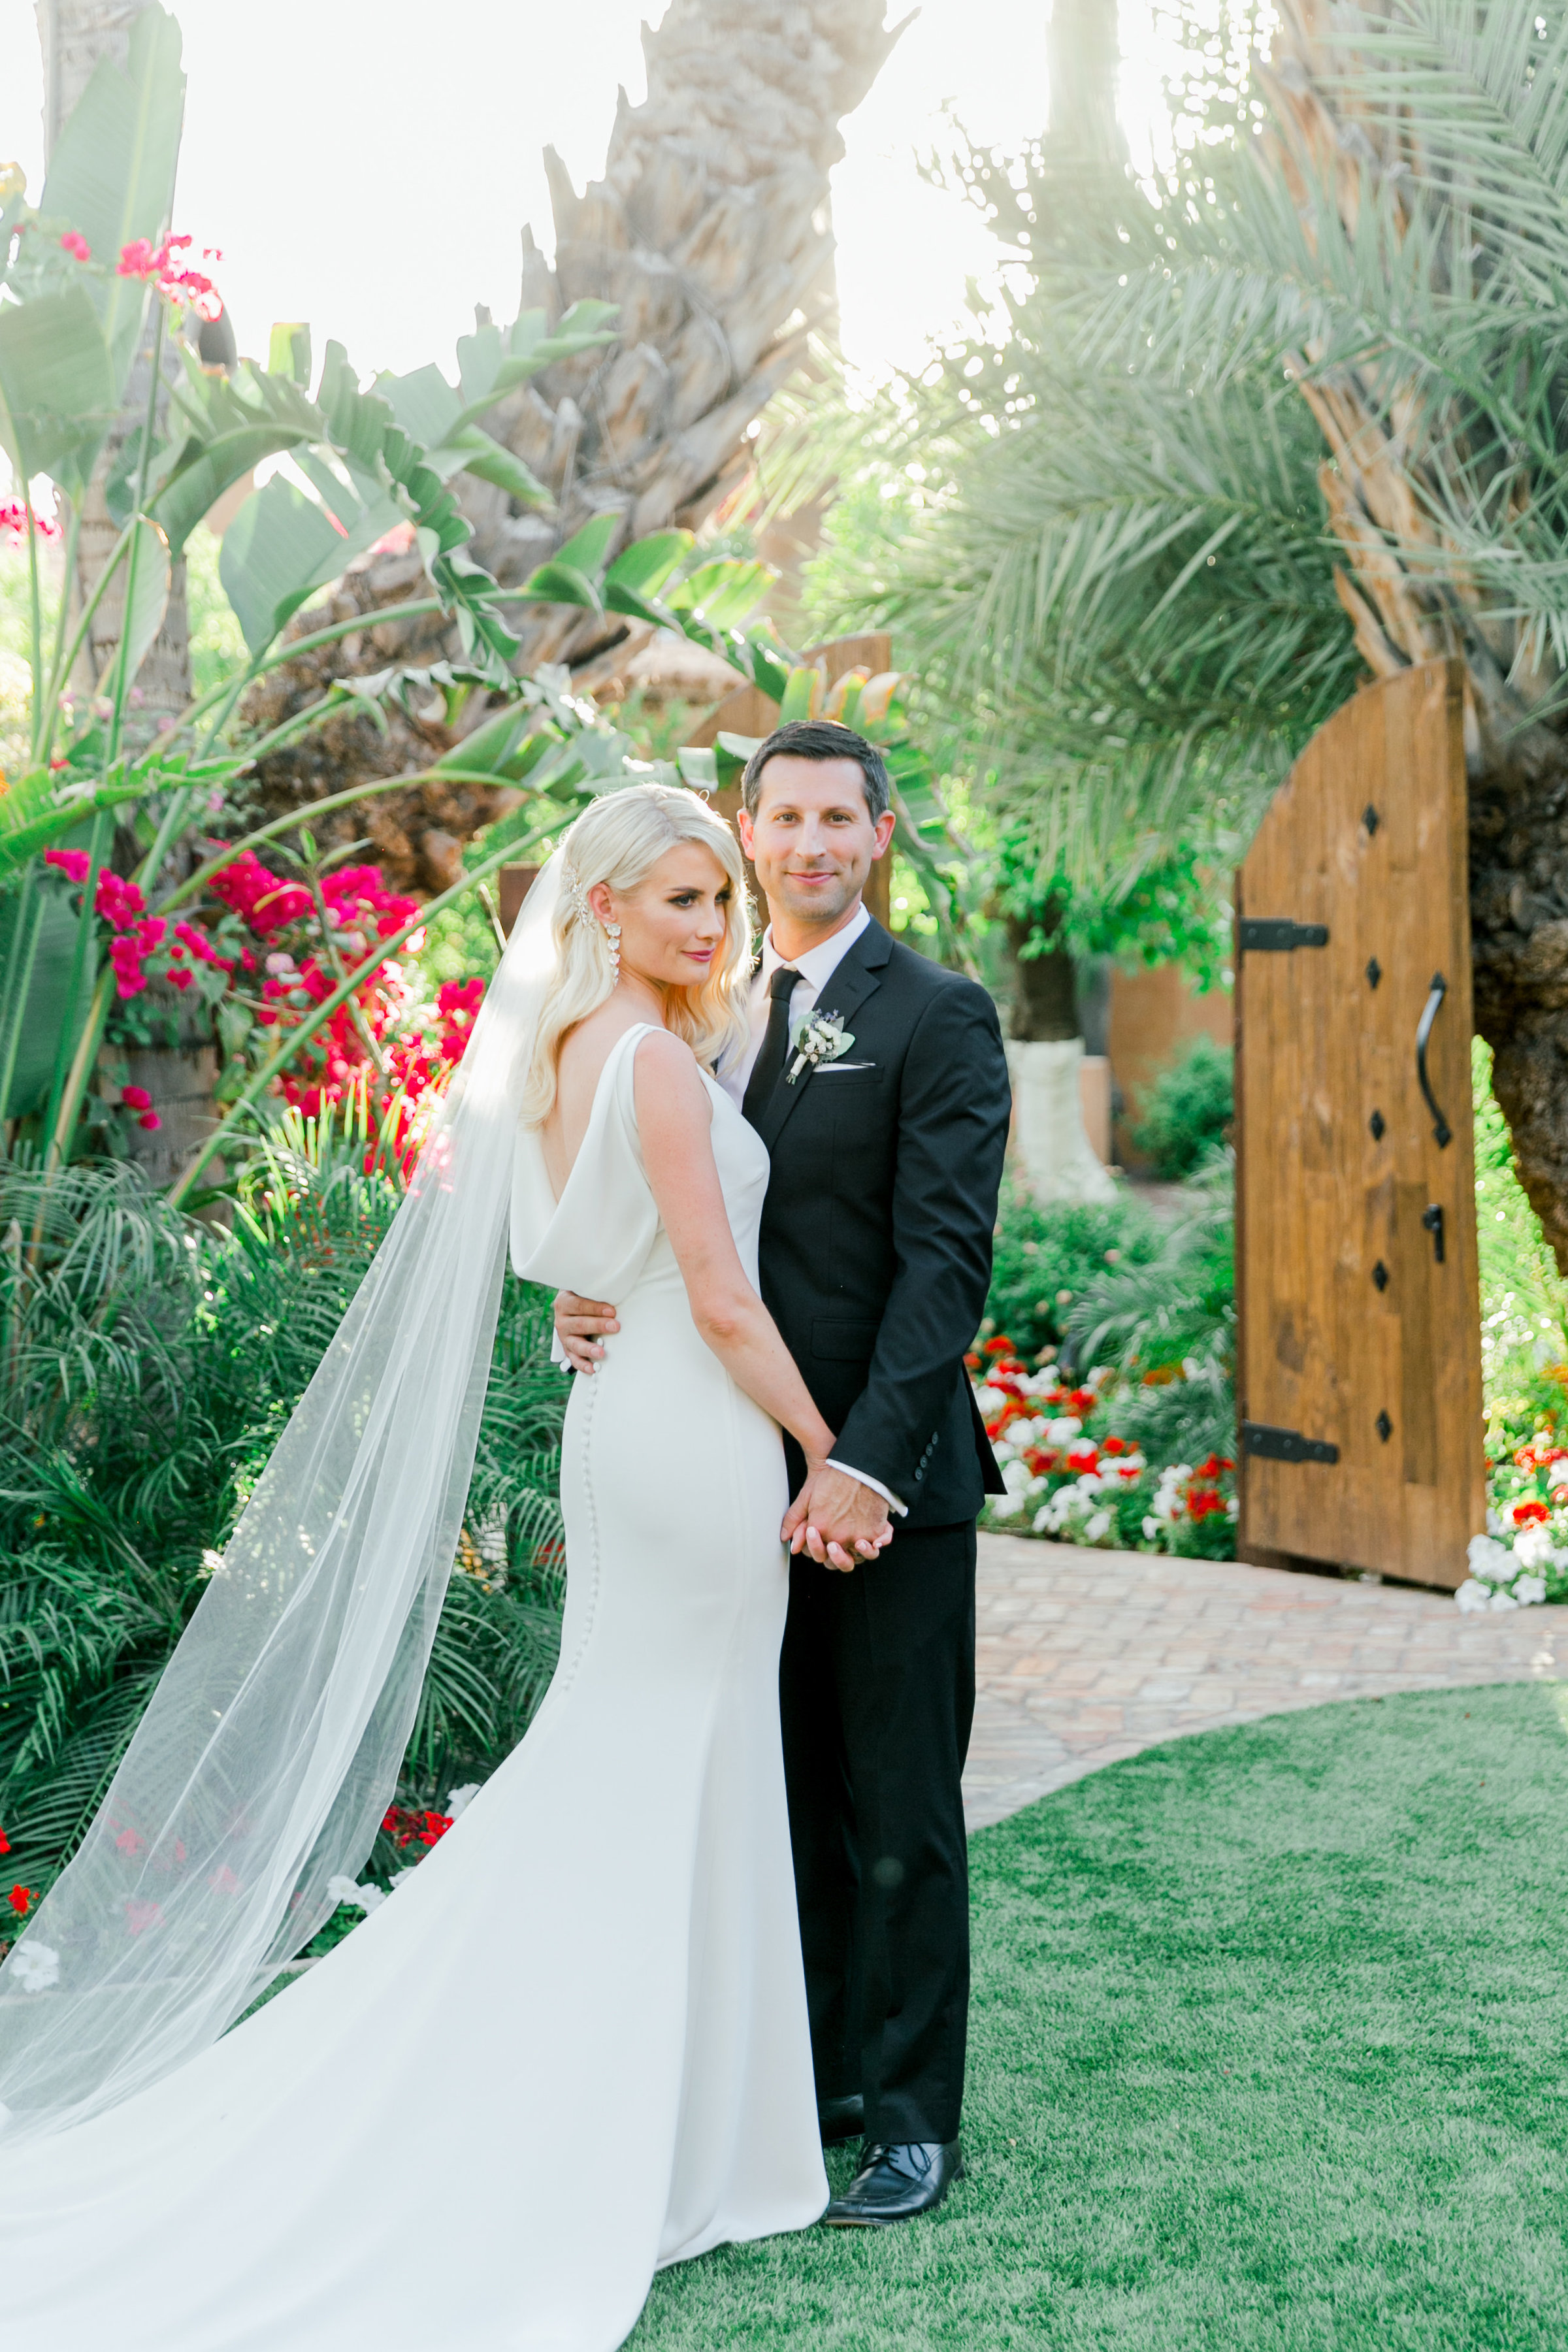 Karlie Colleen Photography - Arizona Wedding - Royal Palms Resort- Alex & Alex-127